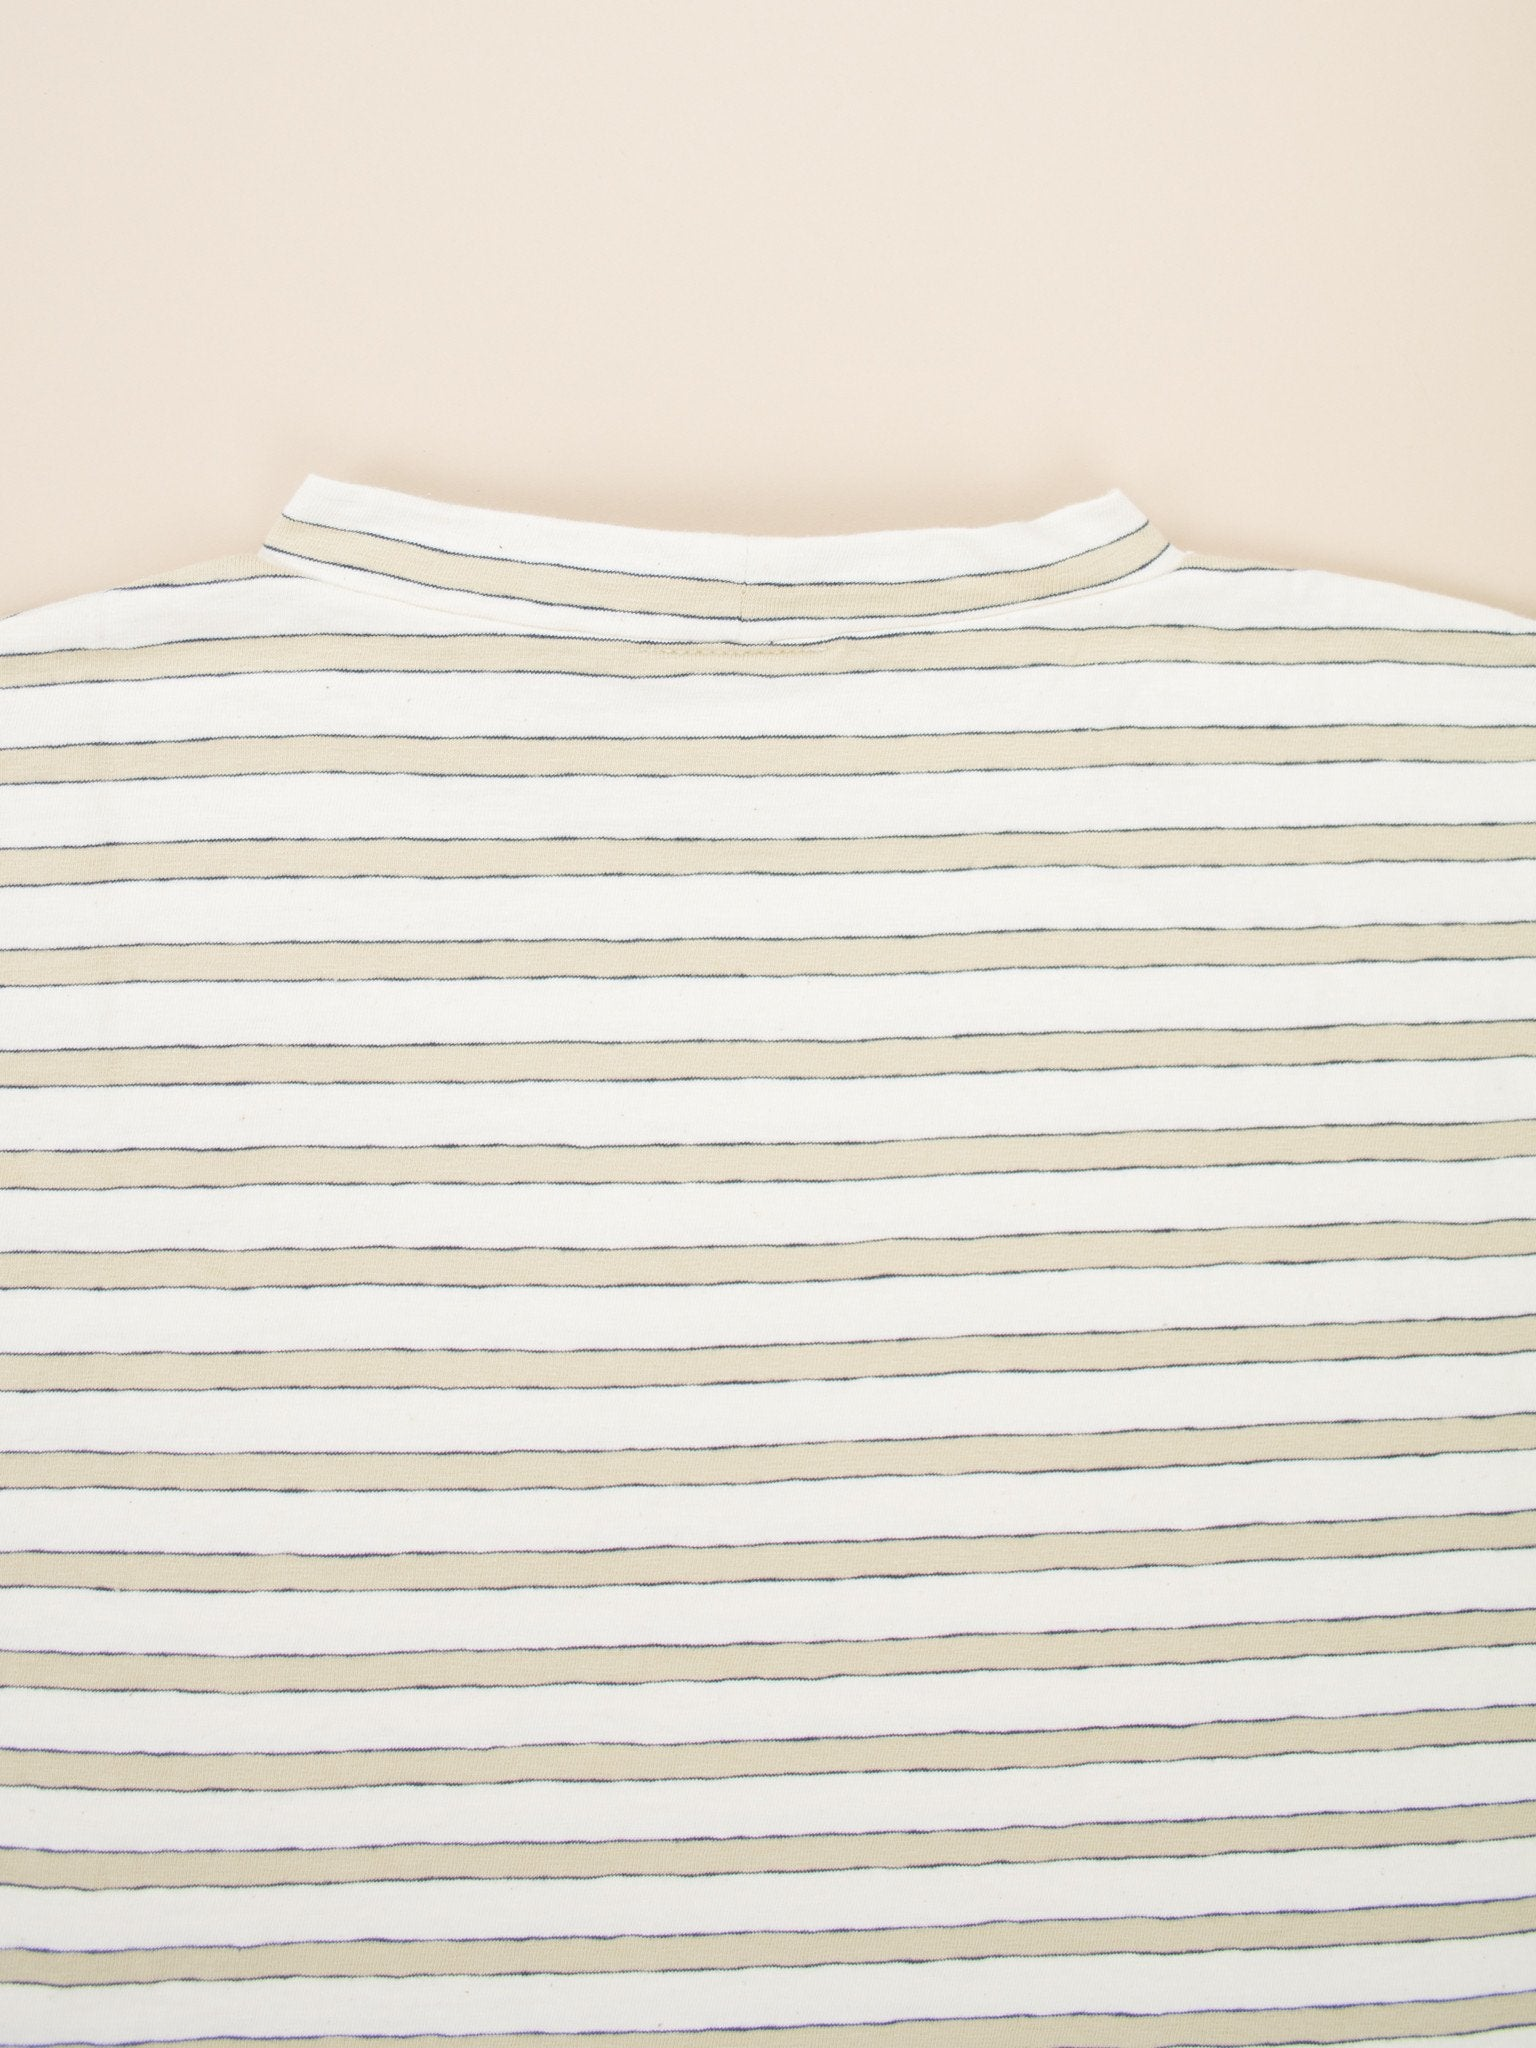 Namu Shop - Ichi Antiquites Cotton Stripe Tee